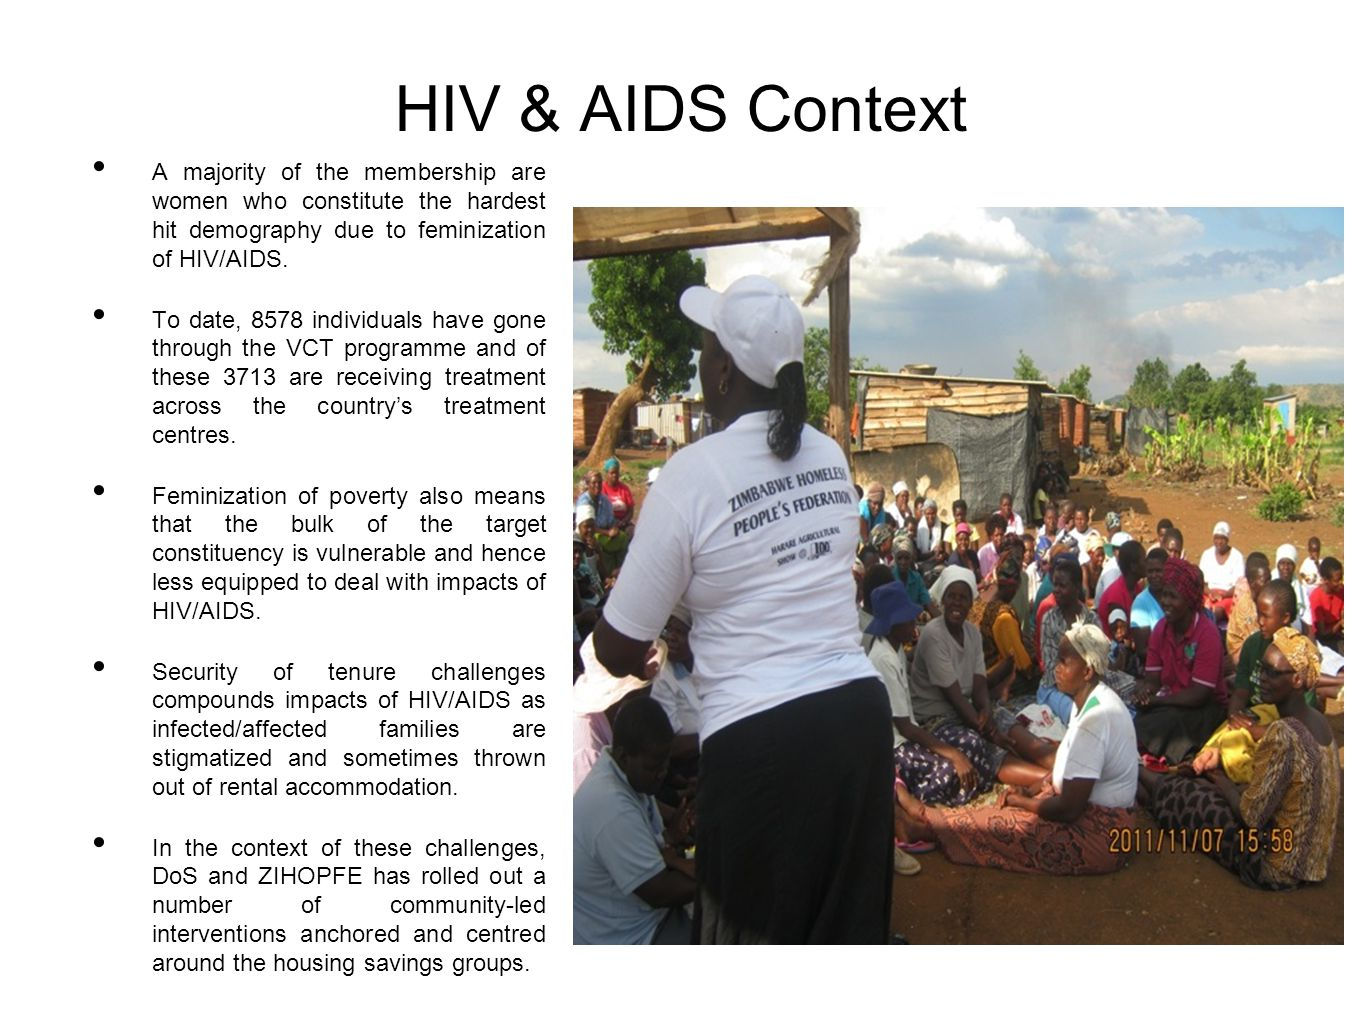 HIV & AIDS Context A majority of the membership are women who constitute the hardest hit demography due to feminization of HIV/AIDS. To date, 8578 ind